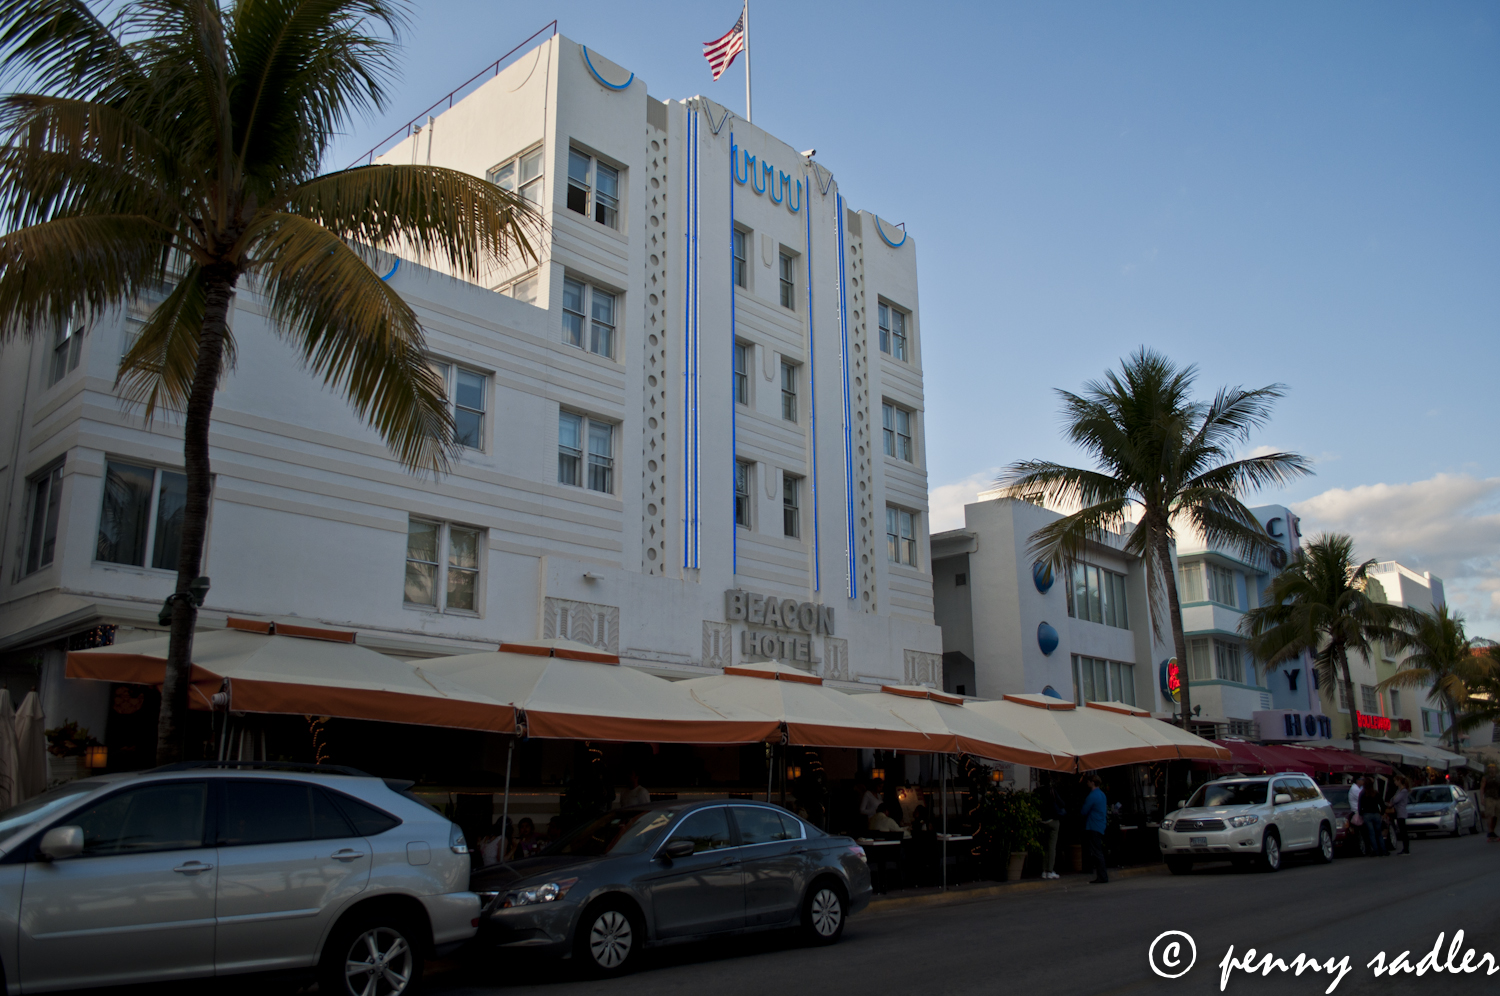 The best way to see art deco architecture in South Beach @PennySadler 2013